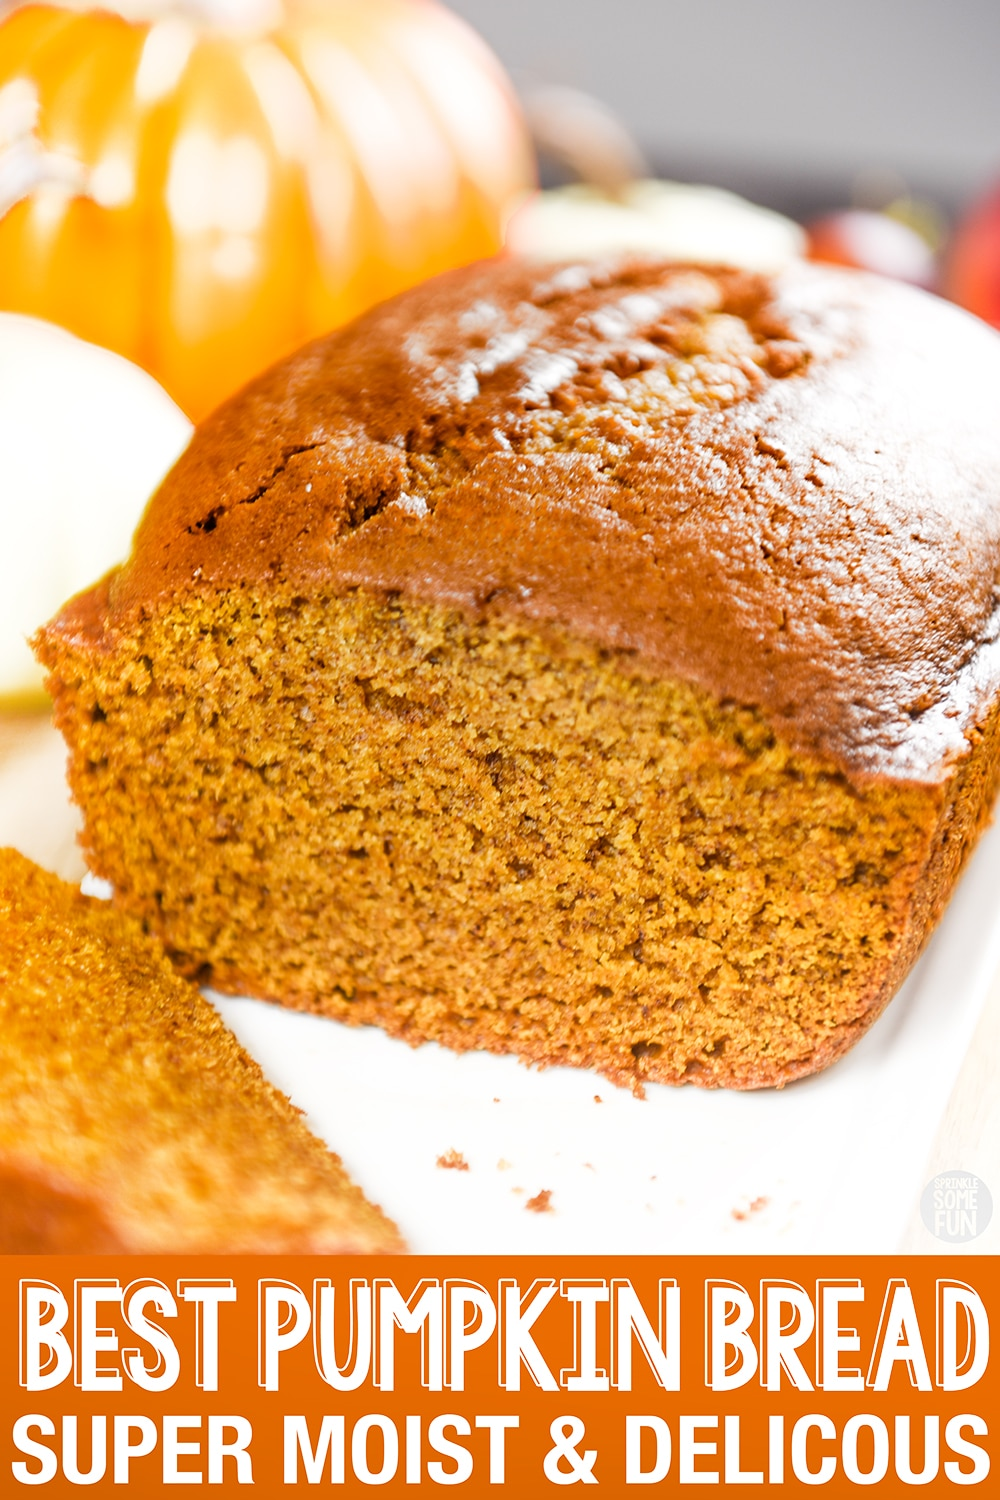 This recipe for pumpkin bread is made with warm spices and sweet pumpkins. It makes the best pumpkin bread that is always super moist. #pumpkinbread #pumpkin #dessert #pumpkinloaf#pumpkinspice #bread #quickbread #easybread #easypumpkinbread #pumpkinbreadgift #moistpumpkinbread